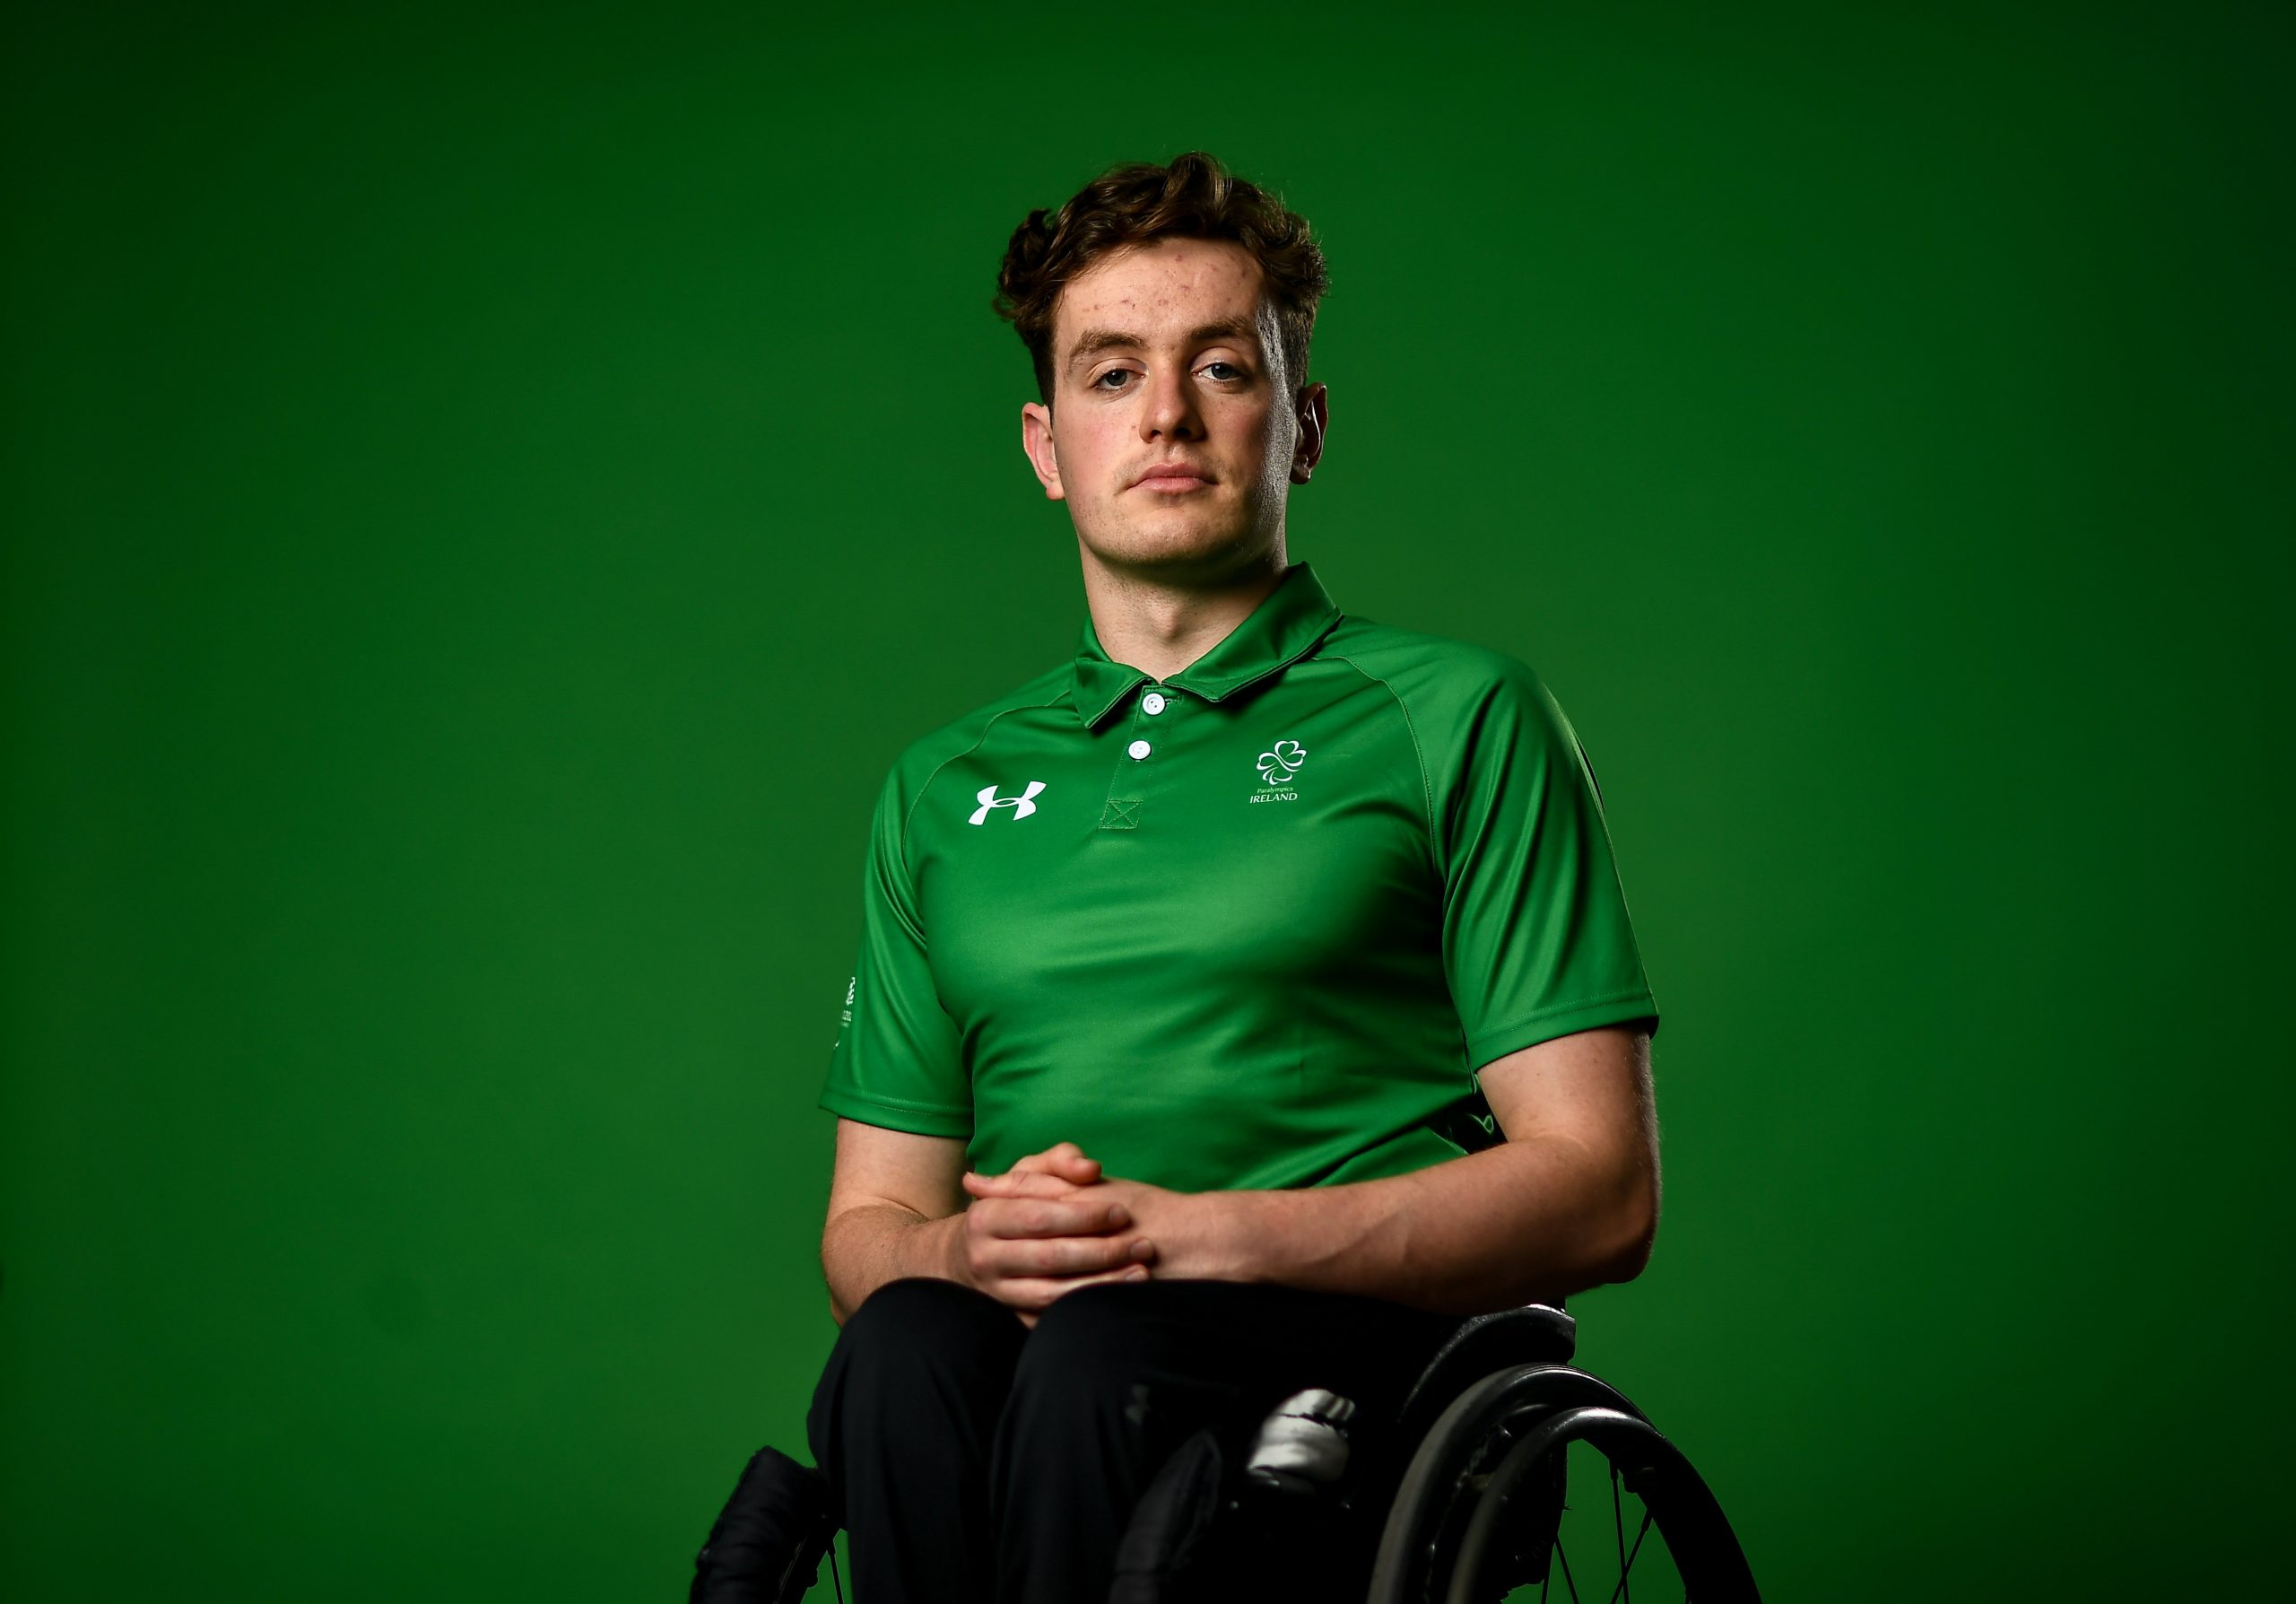 22 July 2021; Swimmer Patrick Flanagan during a Tokyo 2020 Paralympic Games Team Announcement at Abbotstown in Dublin. Photo by David Fitzgerald/Sportsfile *** NO REPRODUCTION FEE ***